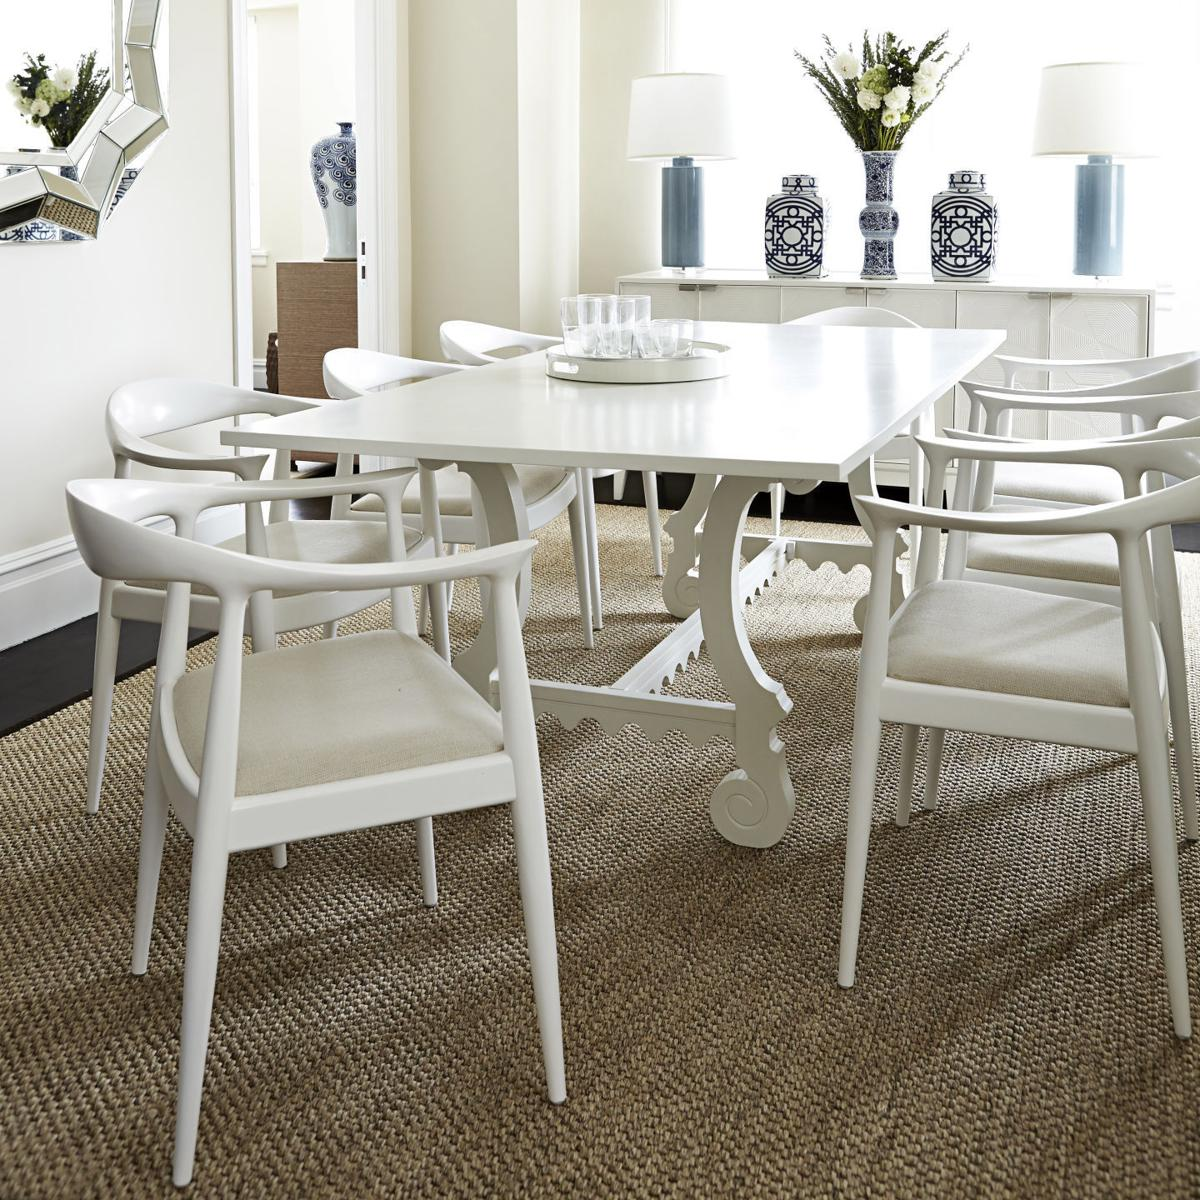 white-dining-table-1